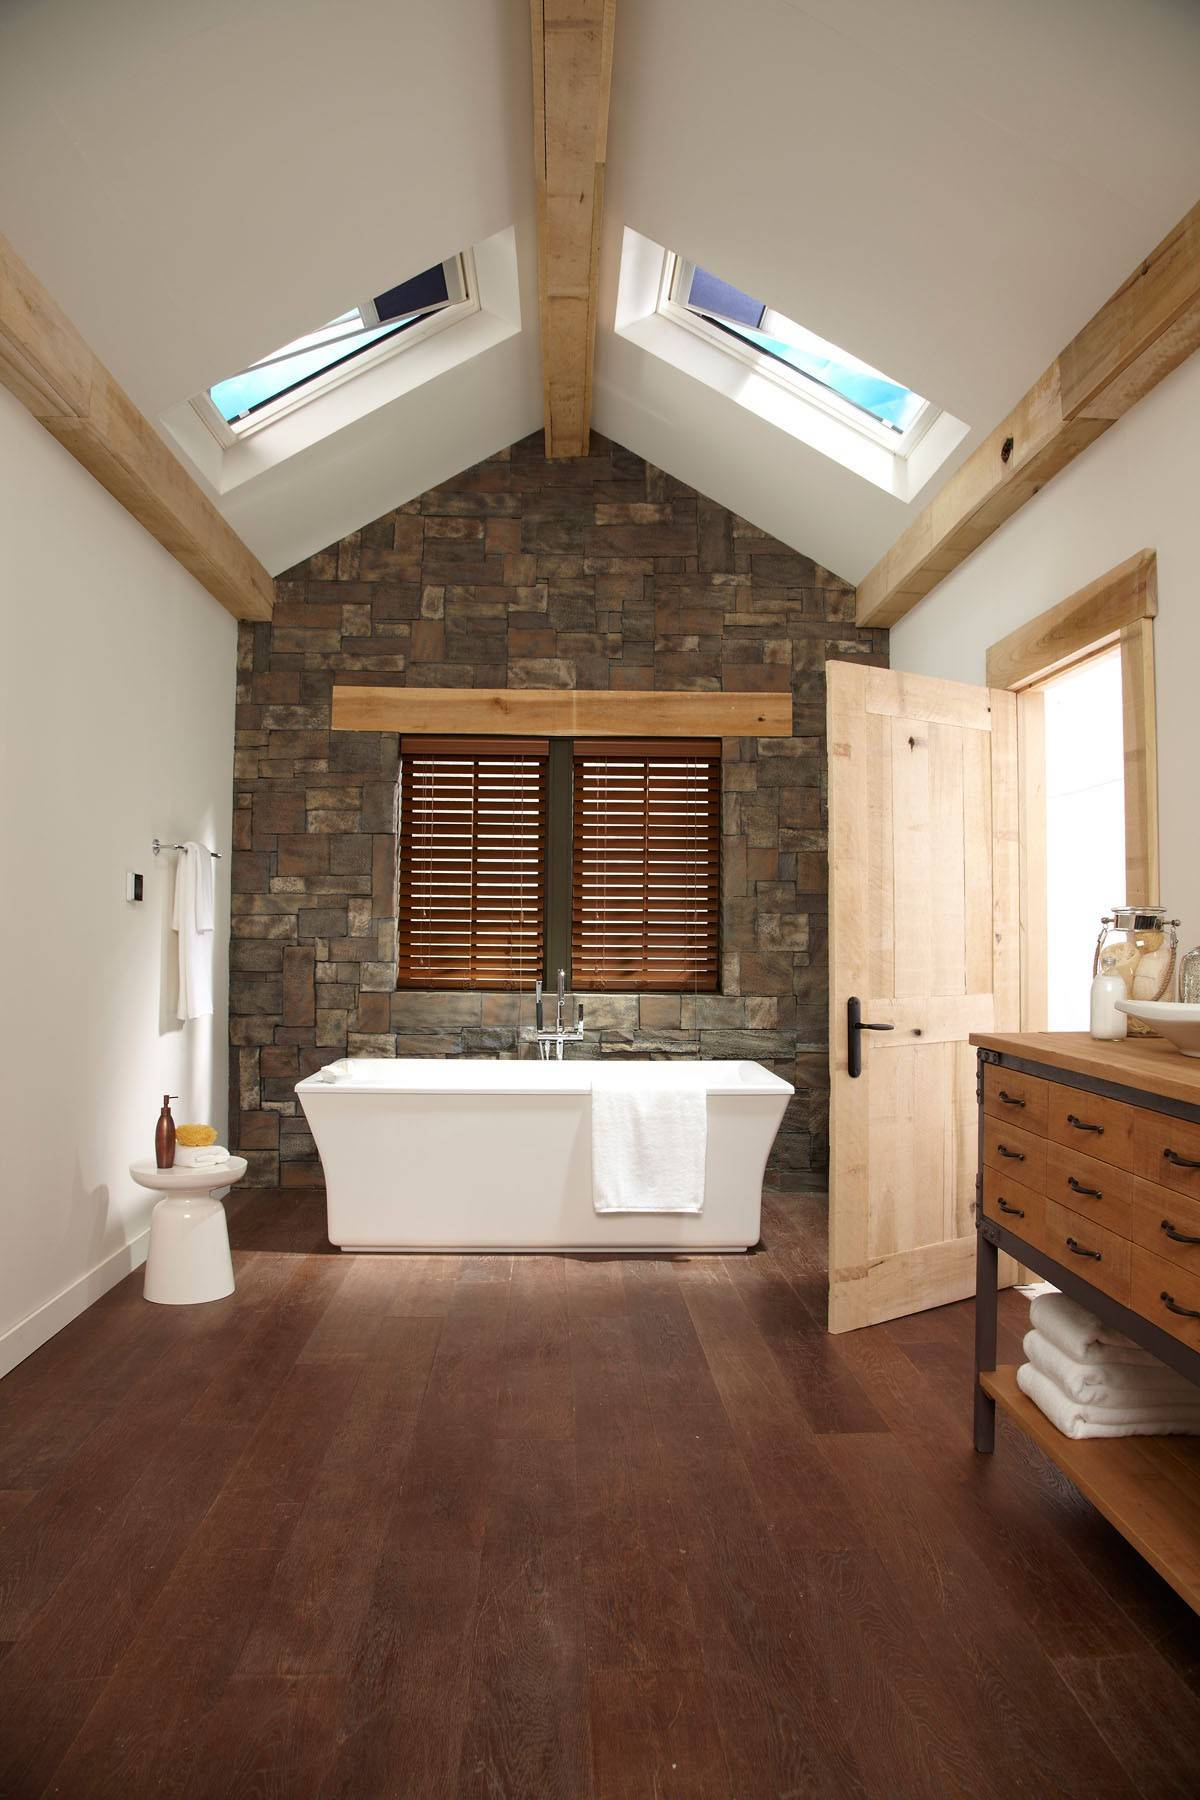 Skylights add dimension to this narrow and potentially dark bathroom.